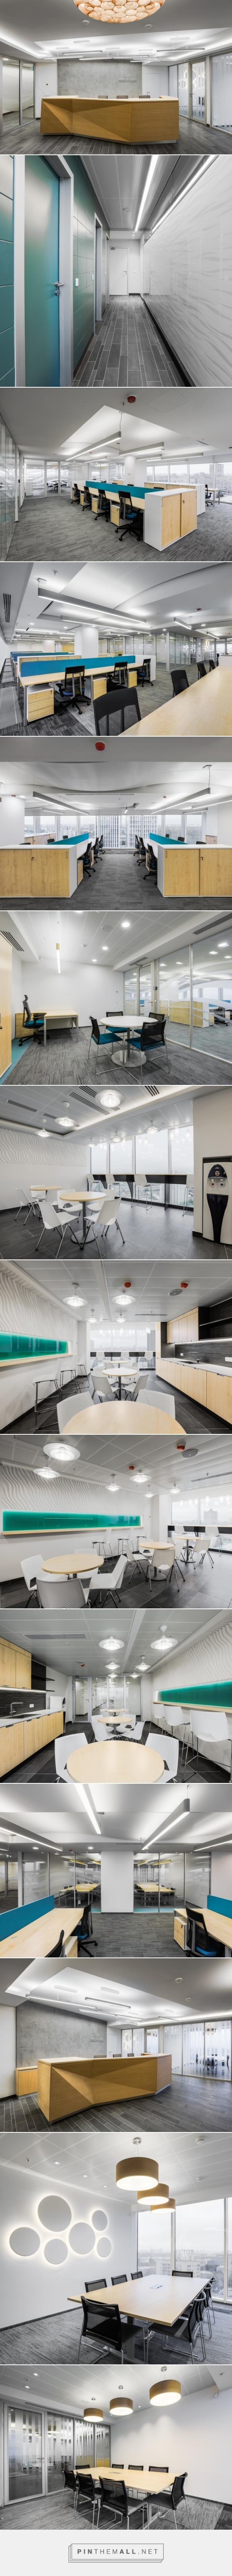 Zenit Bank office by ABD architects, Moscow – Russia » Retail Design Blog... - a grouped images picture - Pin Them All